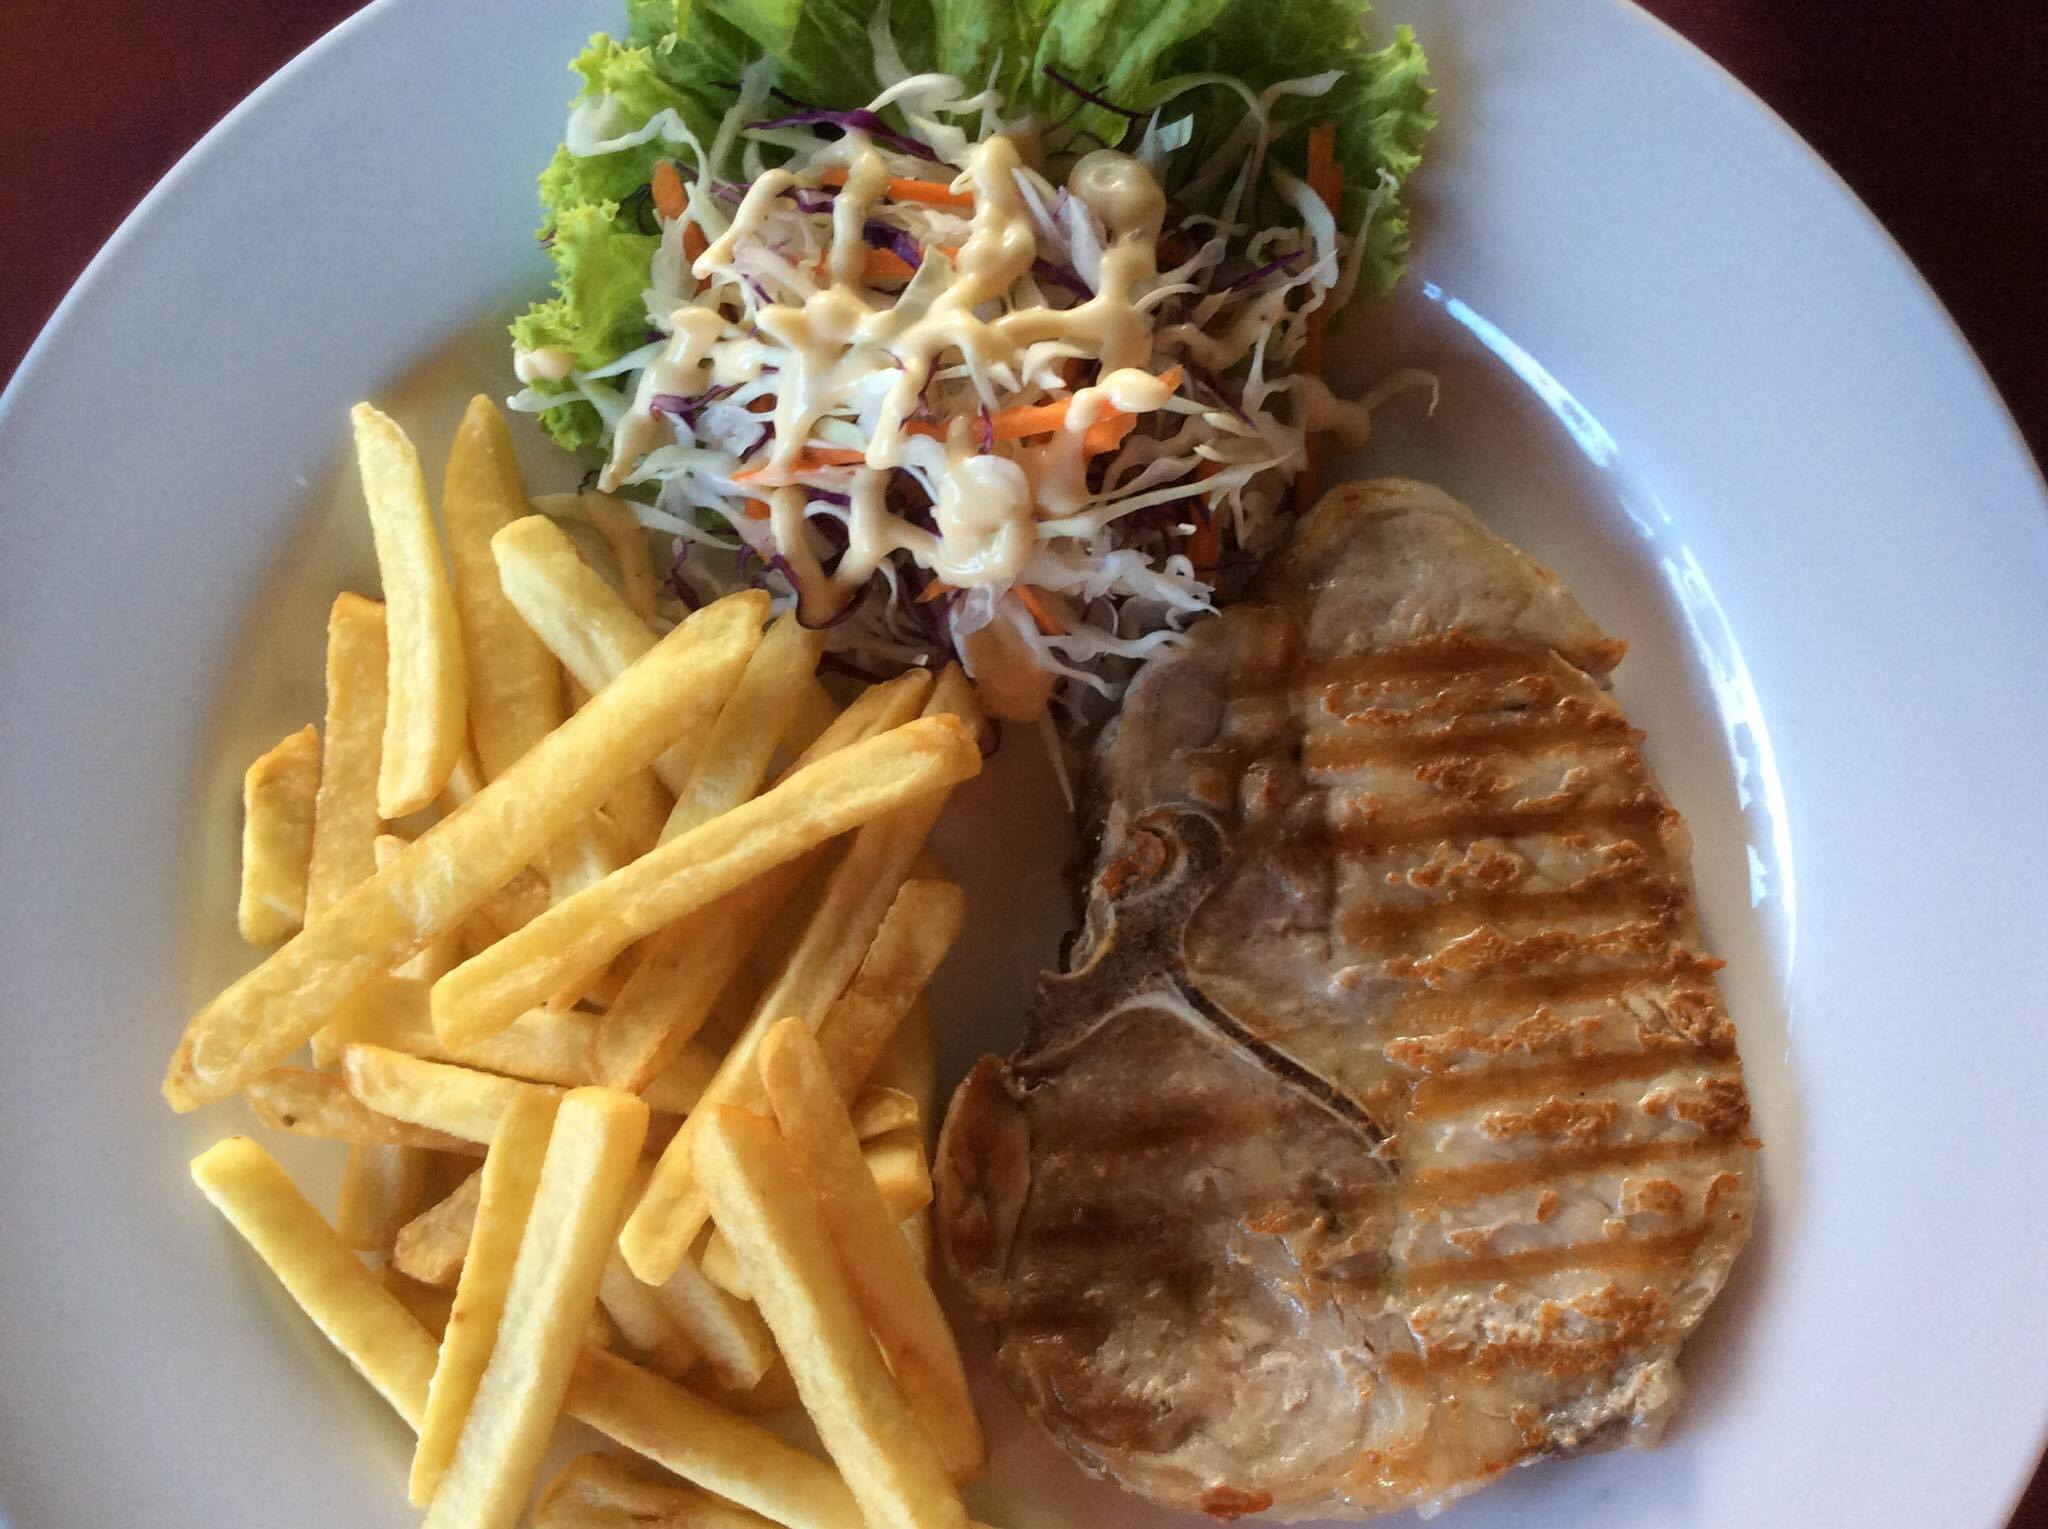 Grilled Pork Chop and Chips